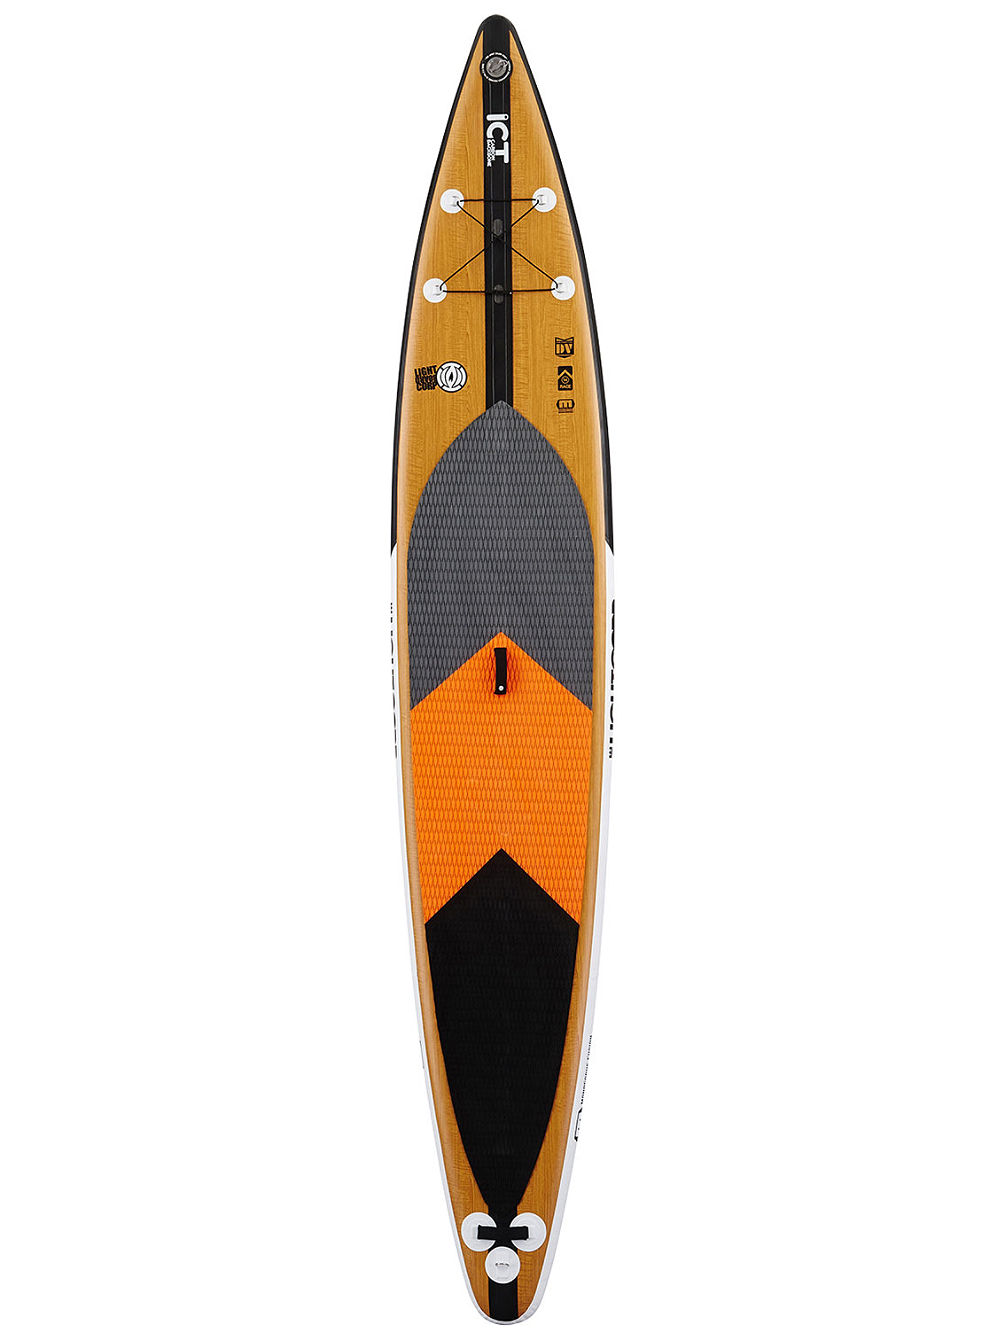 Infltbl Tourer Ict Dv 14'0 SUP Board